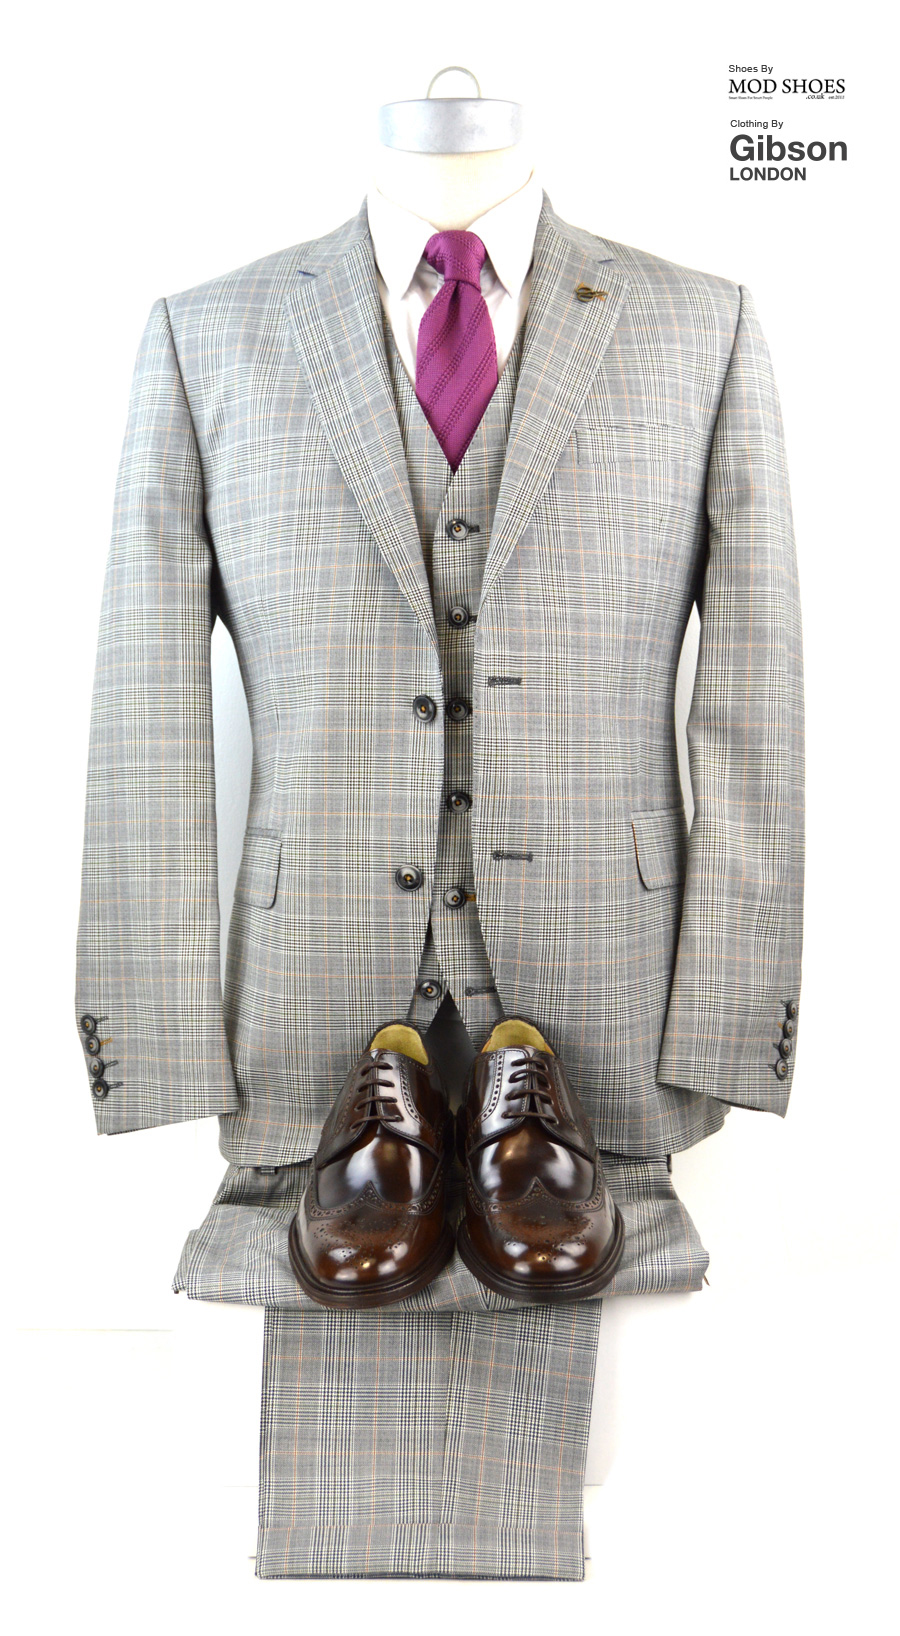 modshoes-bridger-brogues-with-prince-of-wales-suit-from-gibson-clothes